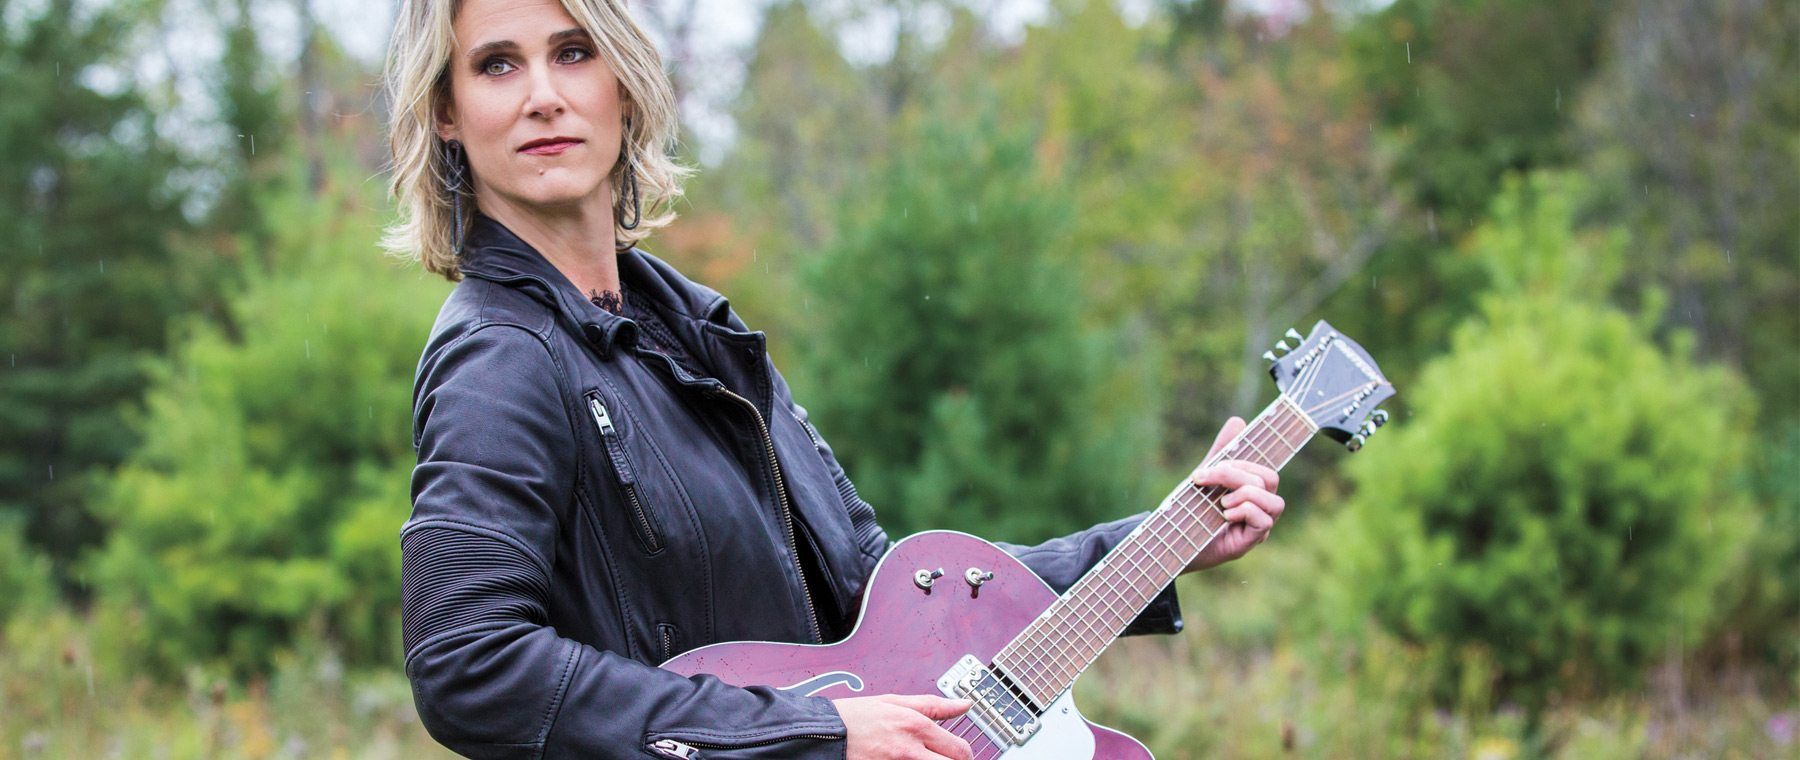 Musician Lynne Hanson on Uneven Ground